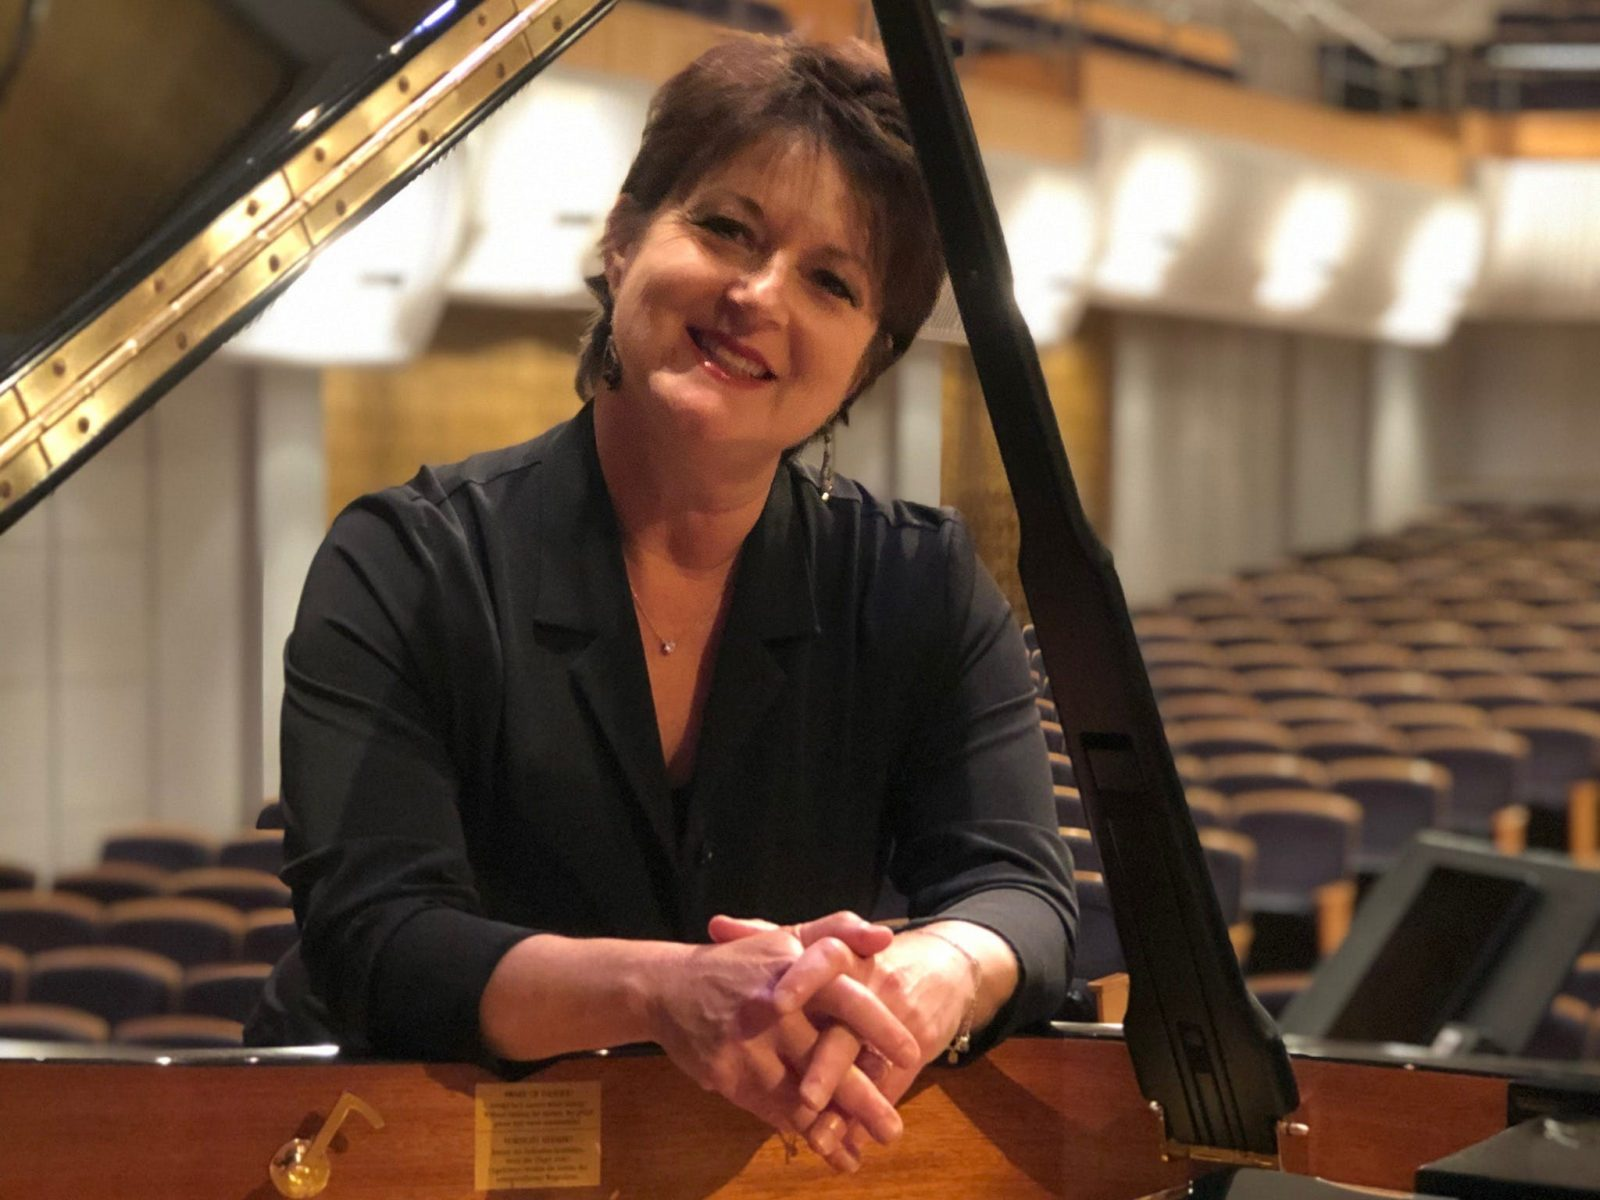 Kathryn Selby at the piano